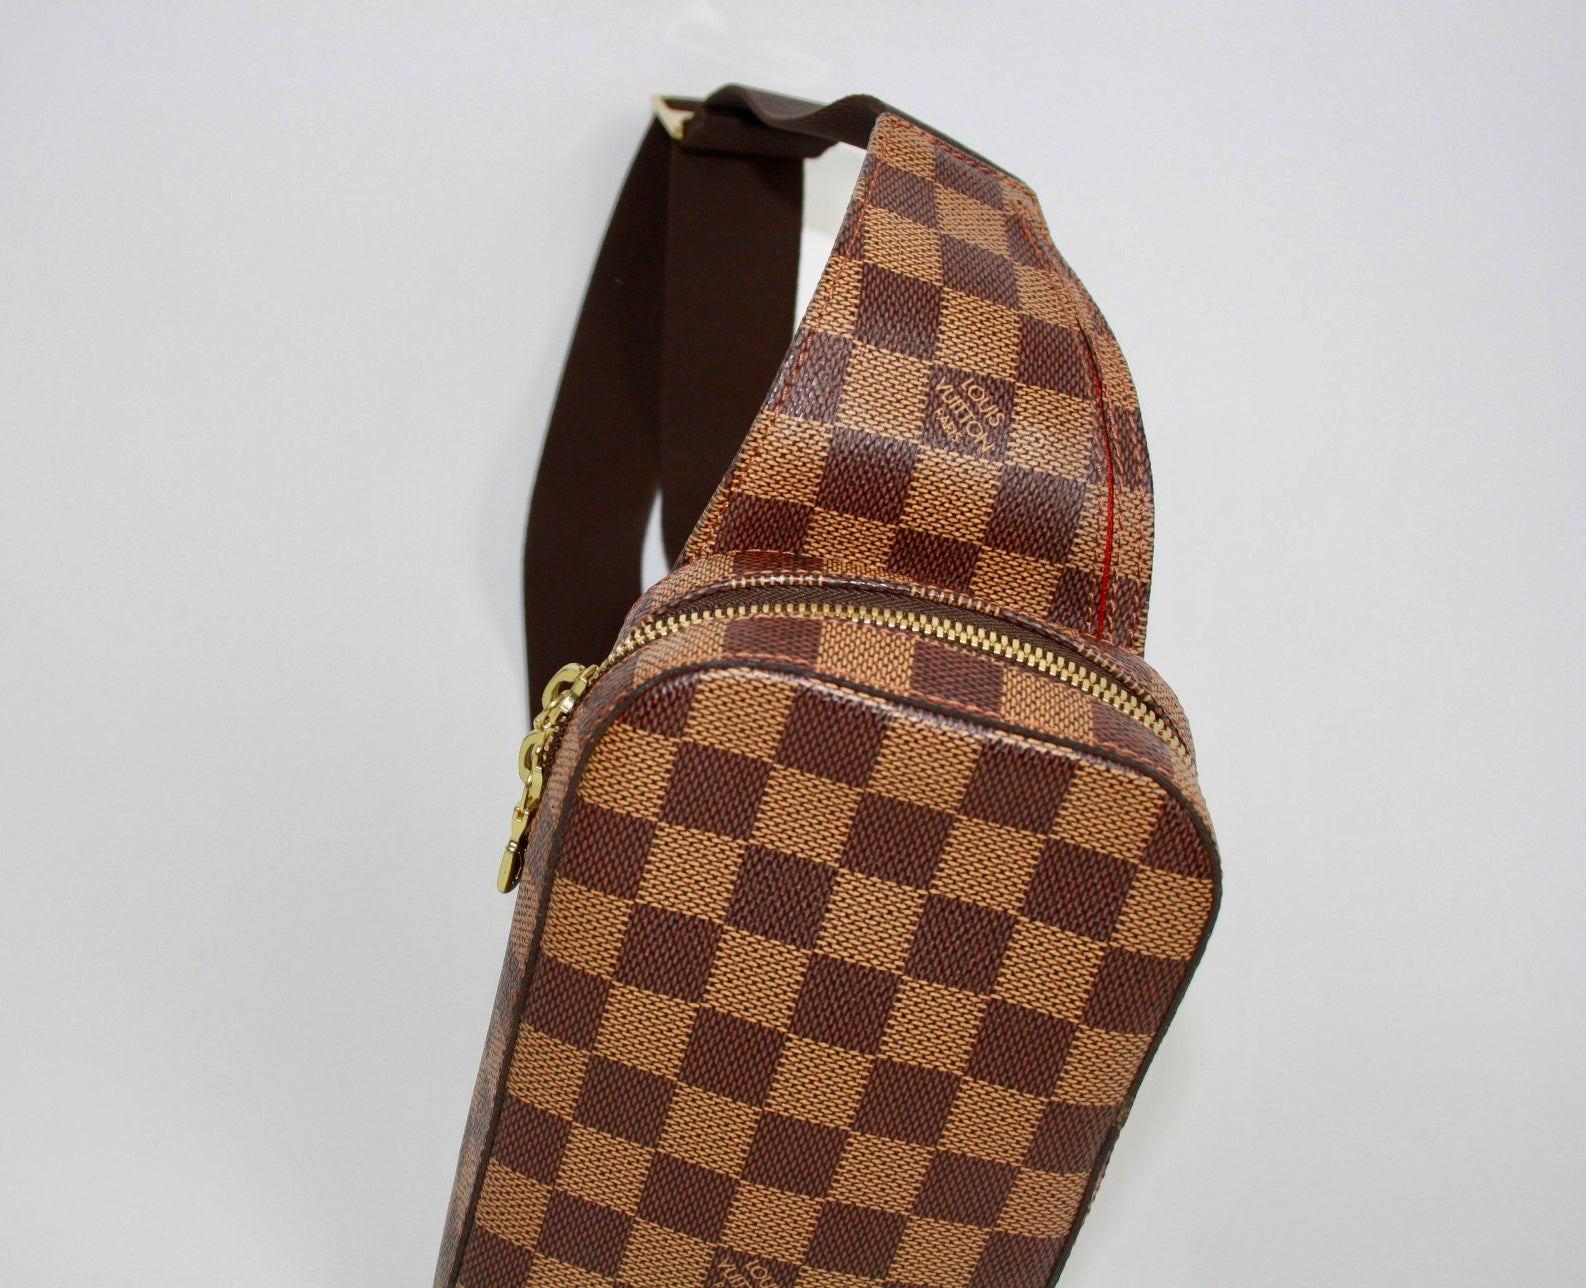 Louis Vuitton Geronimos - Iconics Preloved Luxury